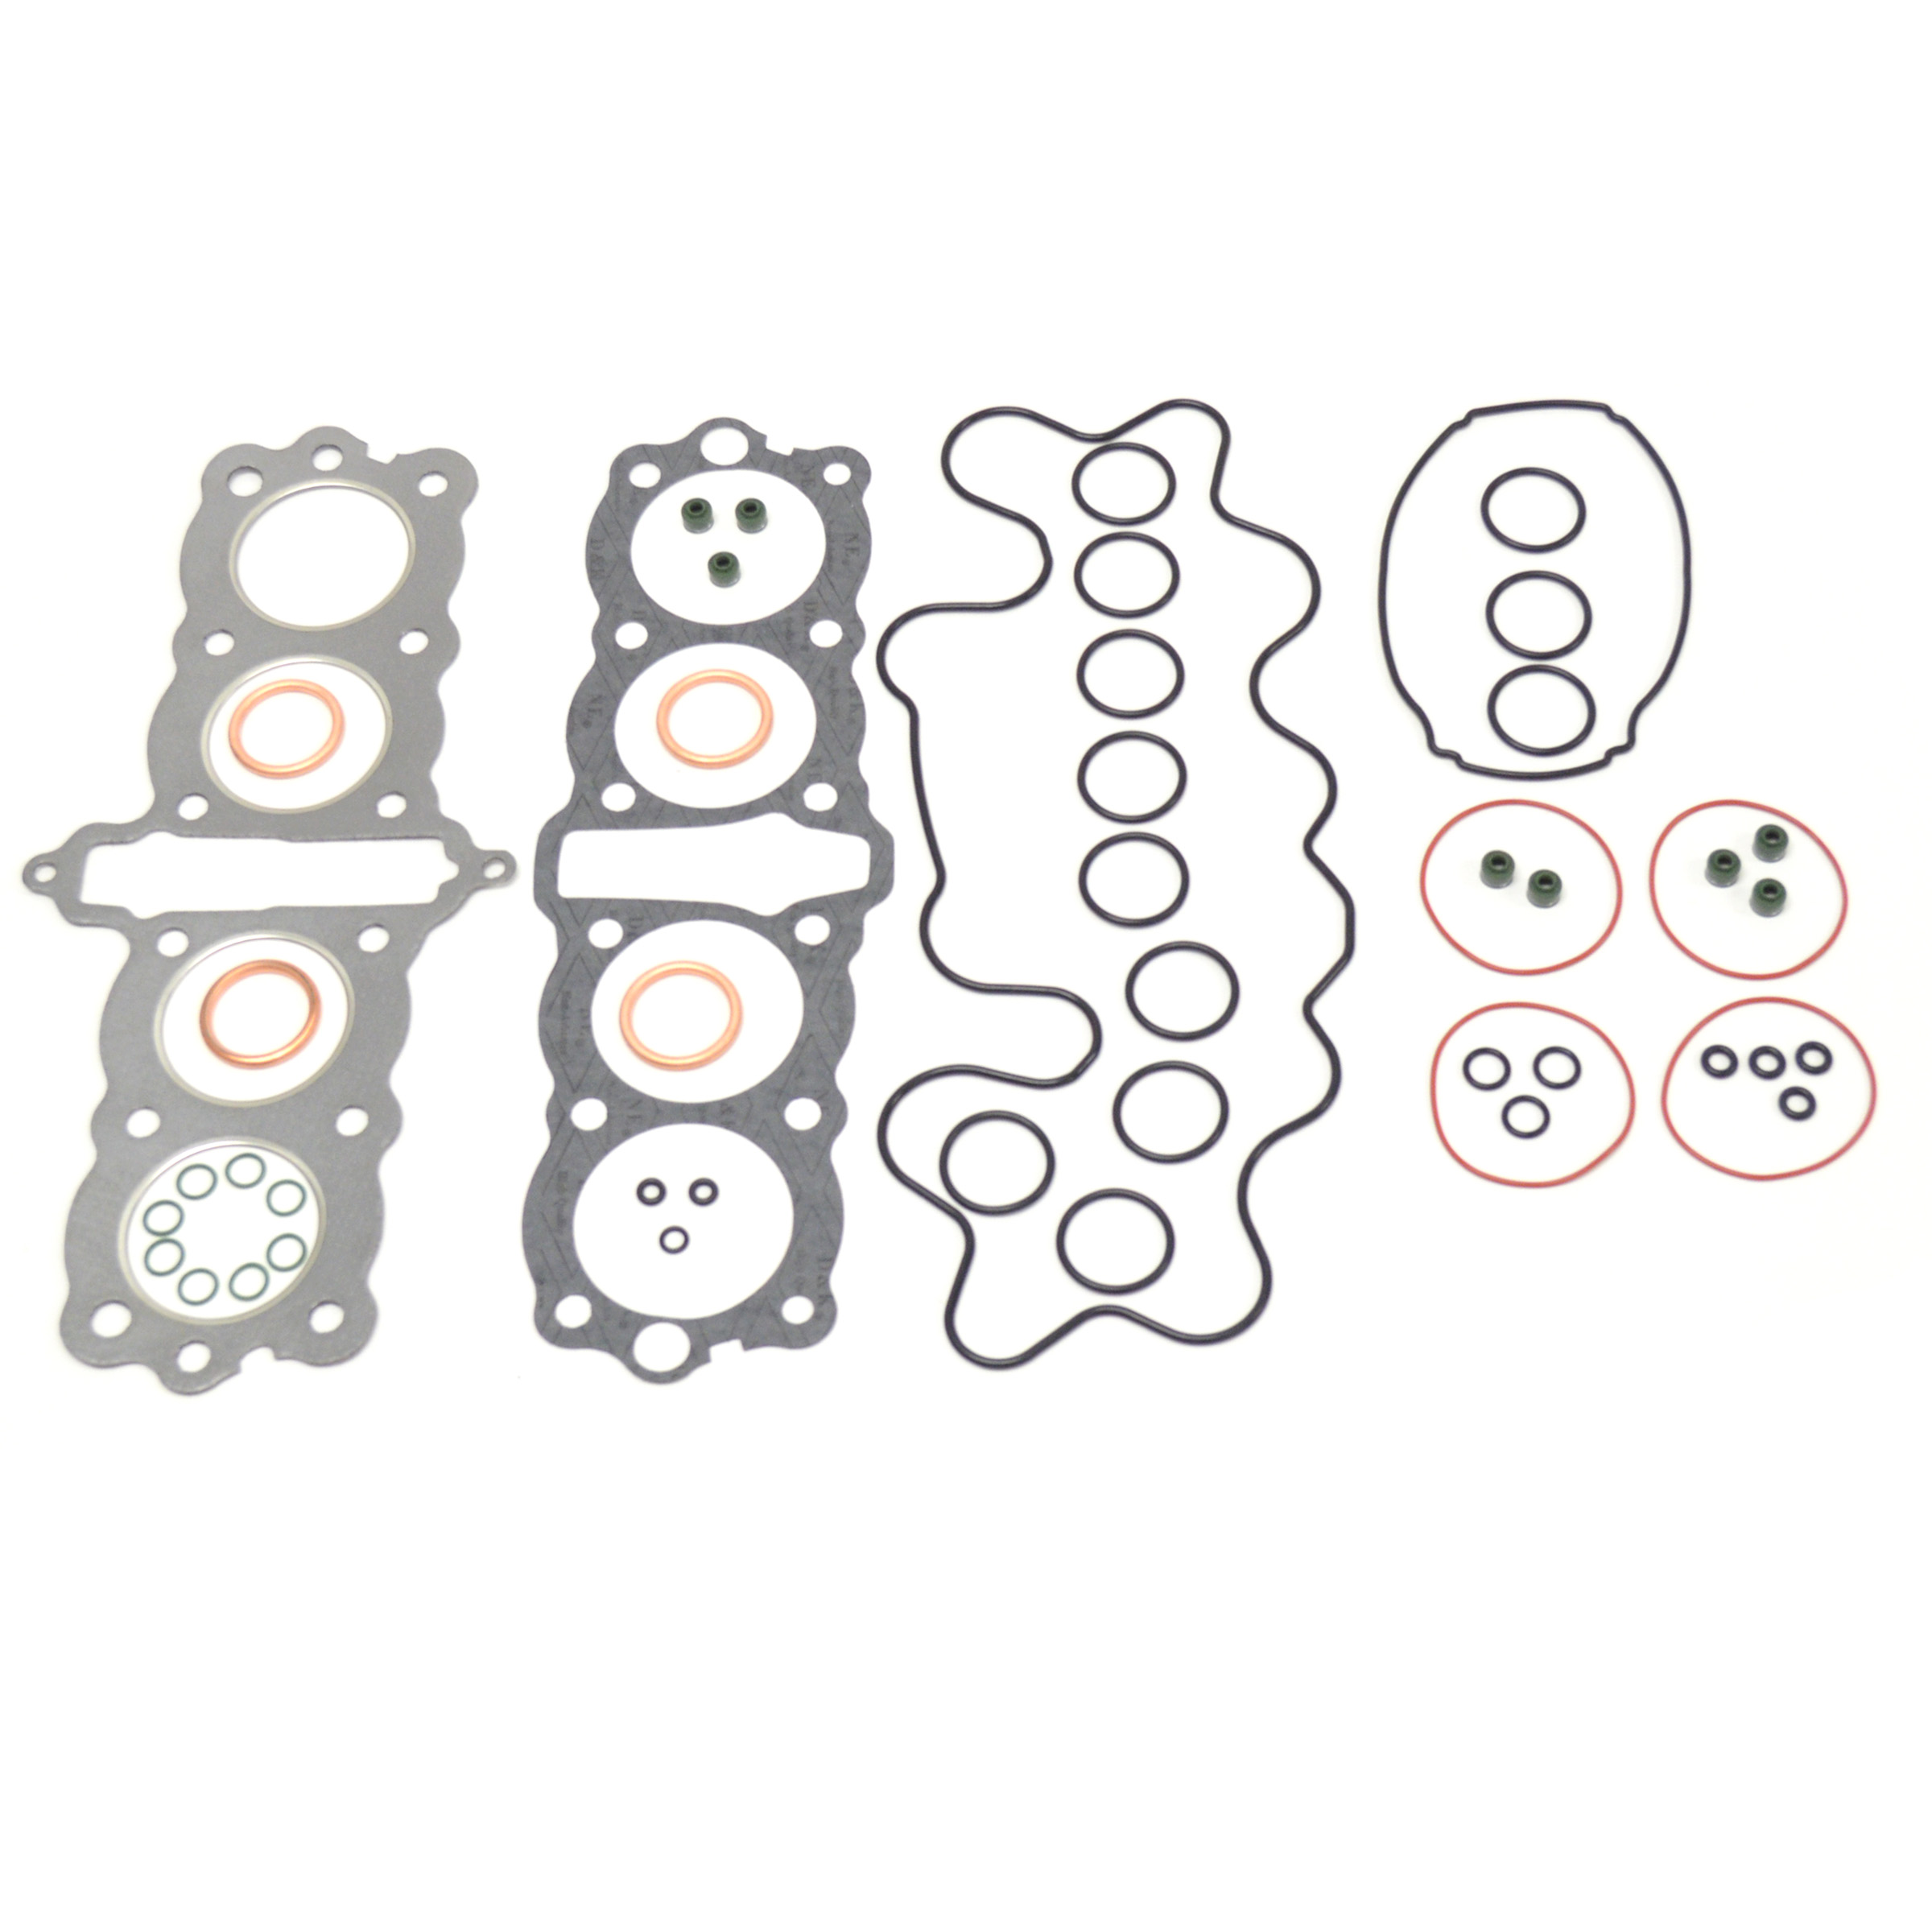 Honda Cb550 Top End Engine Gasket Set Kit